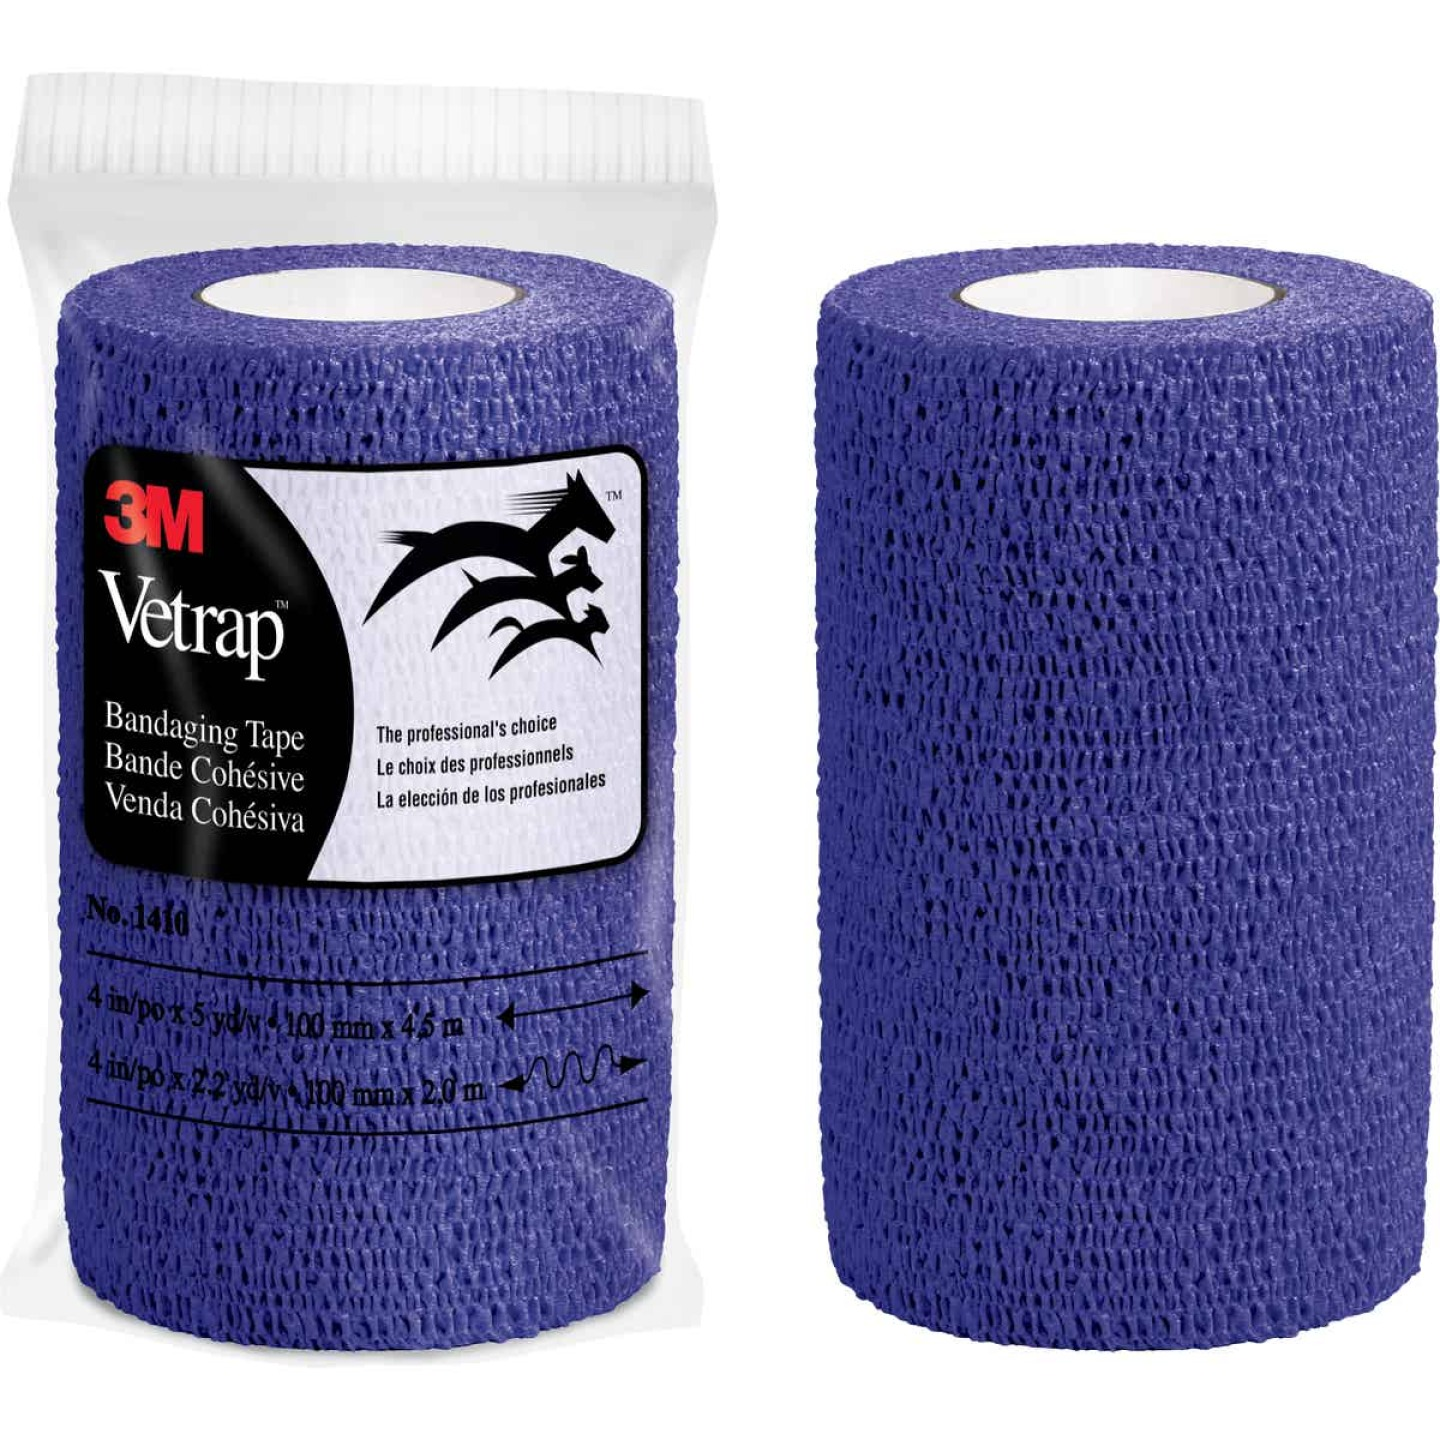 3M Vetrap 4 In. x 5 Yd. Purple Bandaging Wrap Image 1